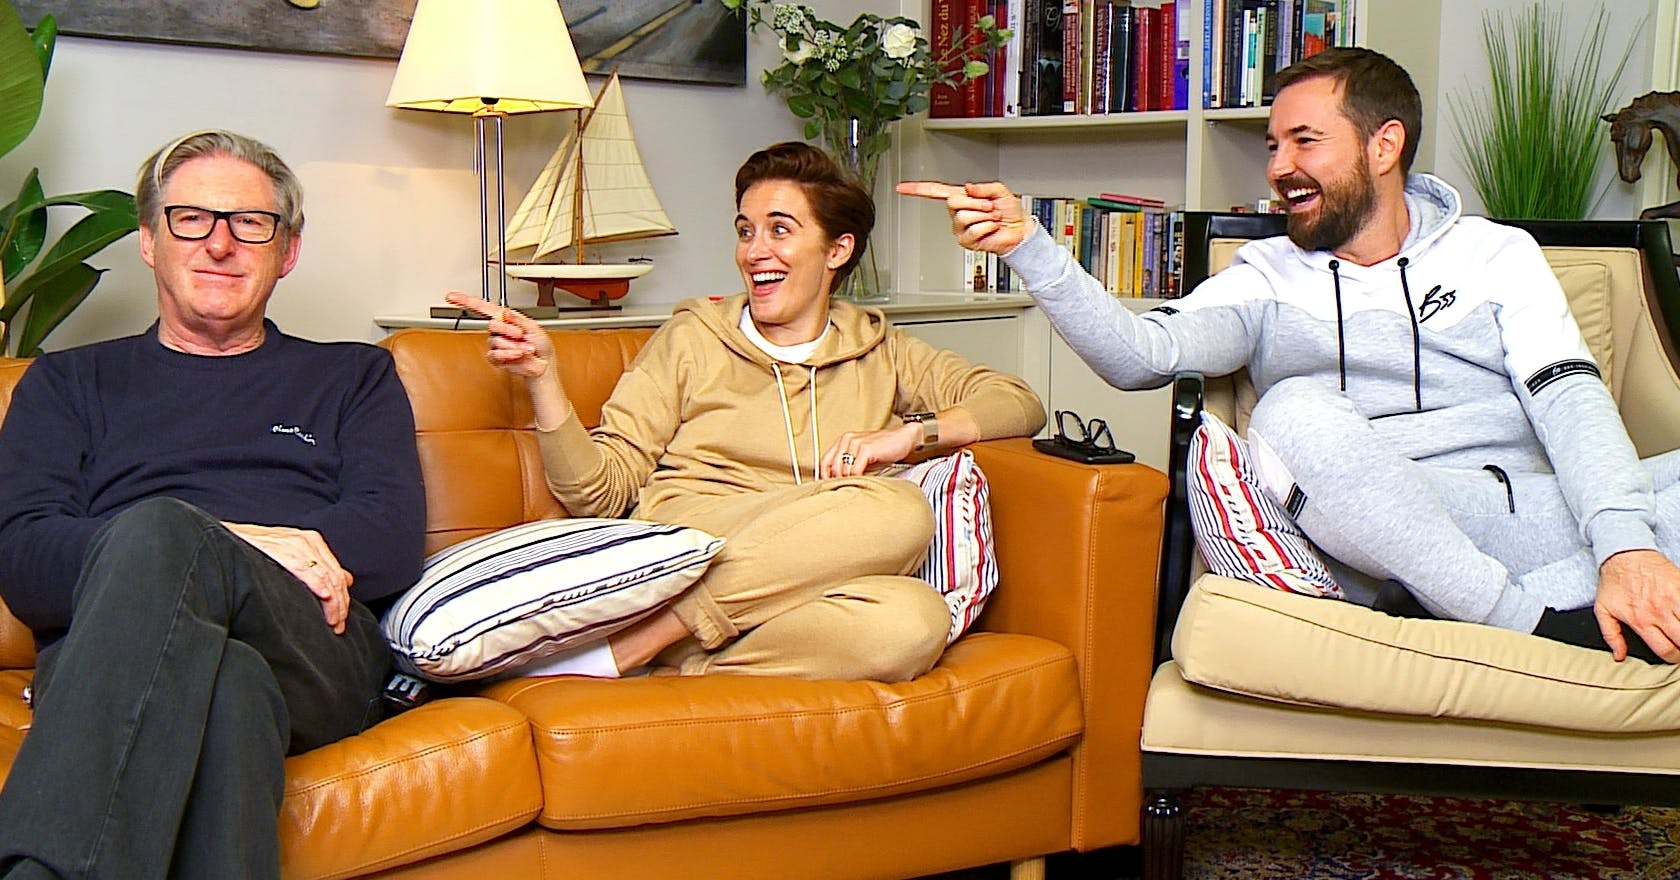 Line of Duty fans can't stop laughing at this Celebrity Gogglebox moment